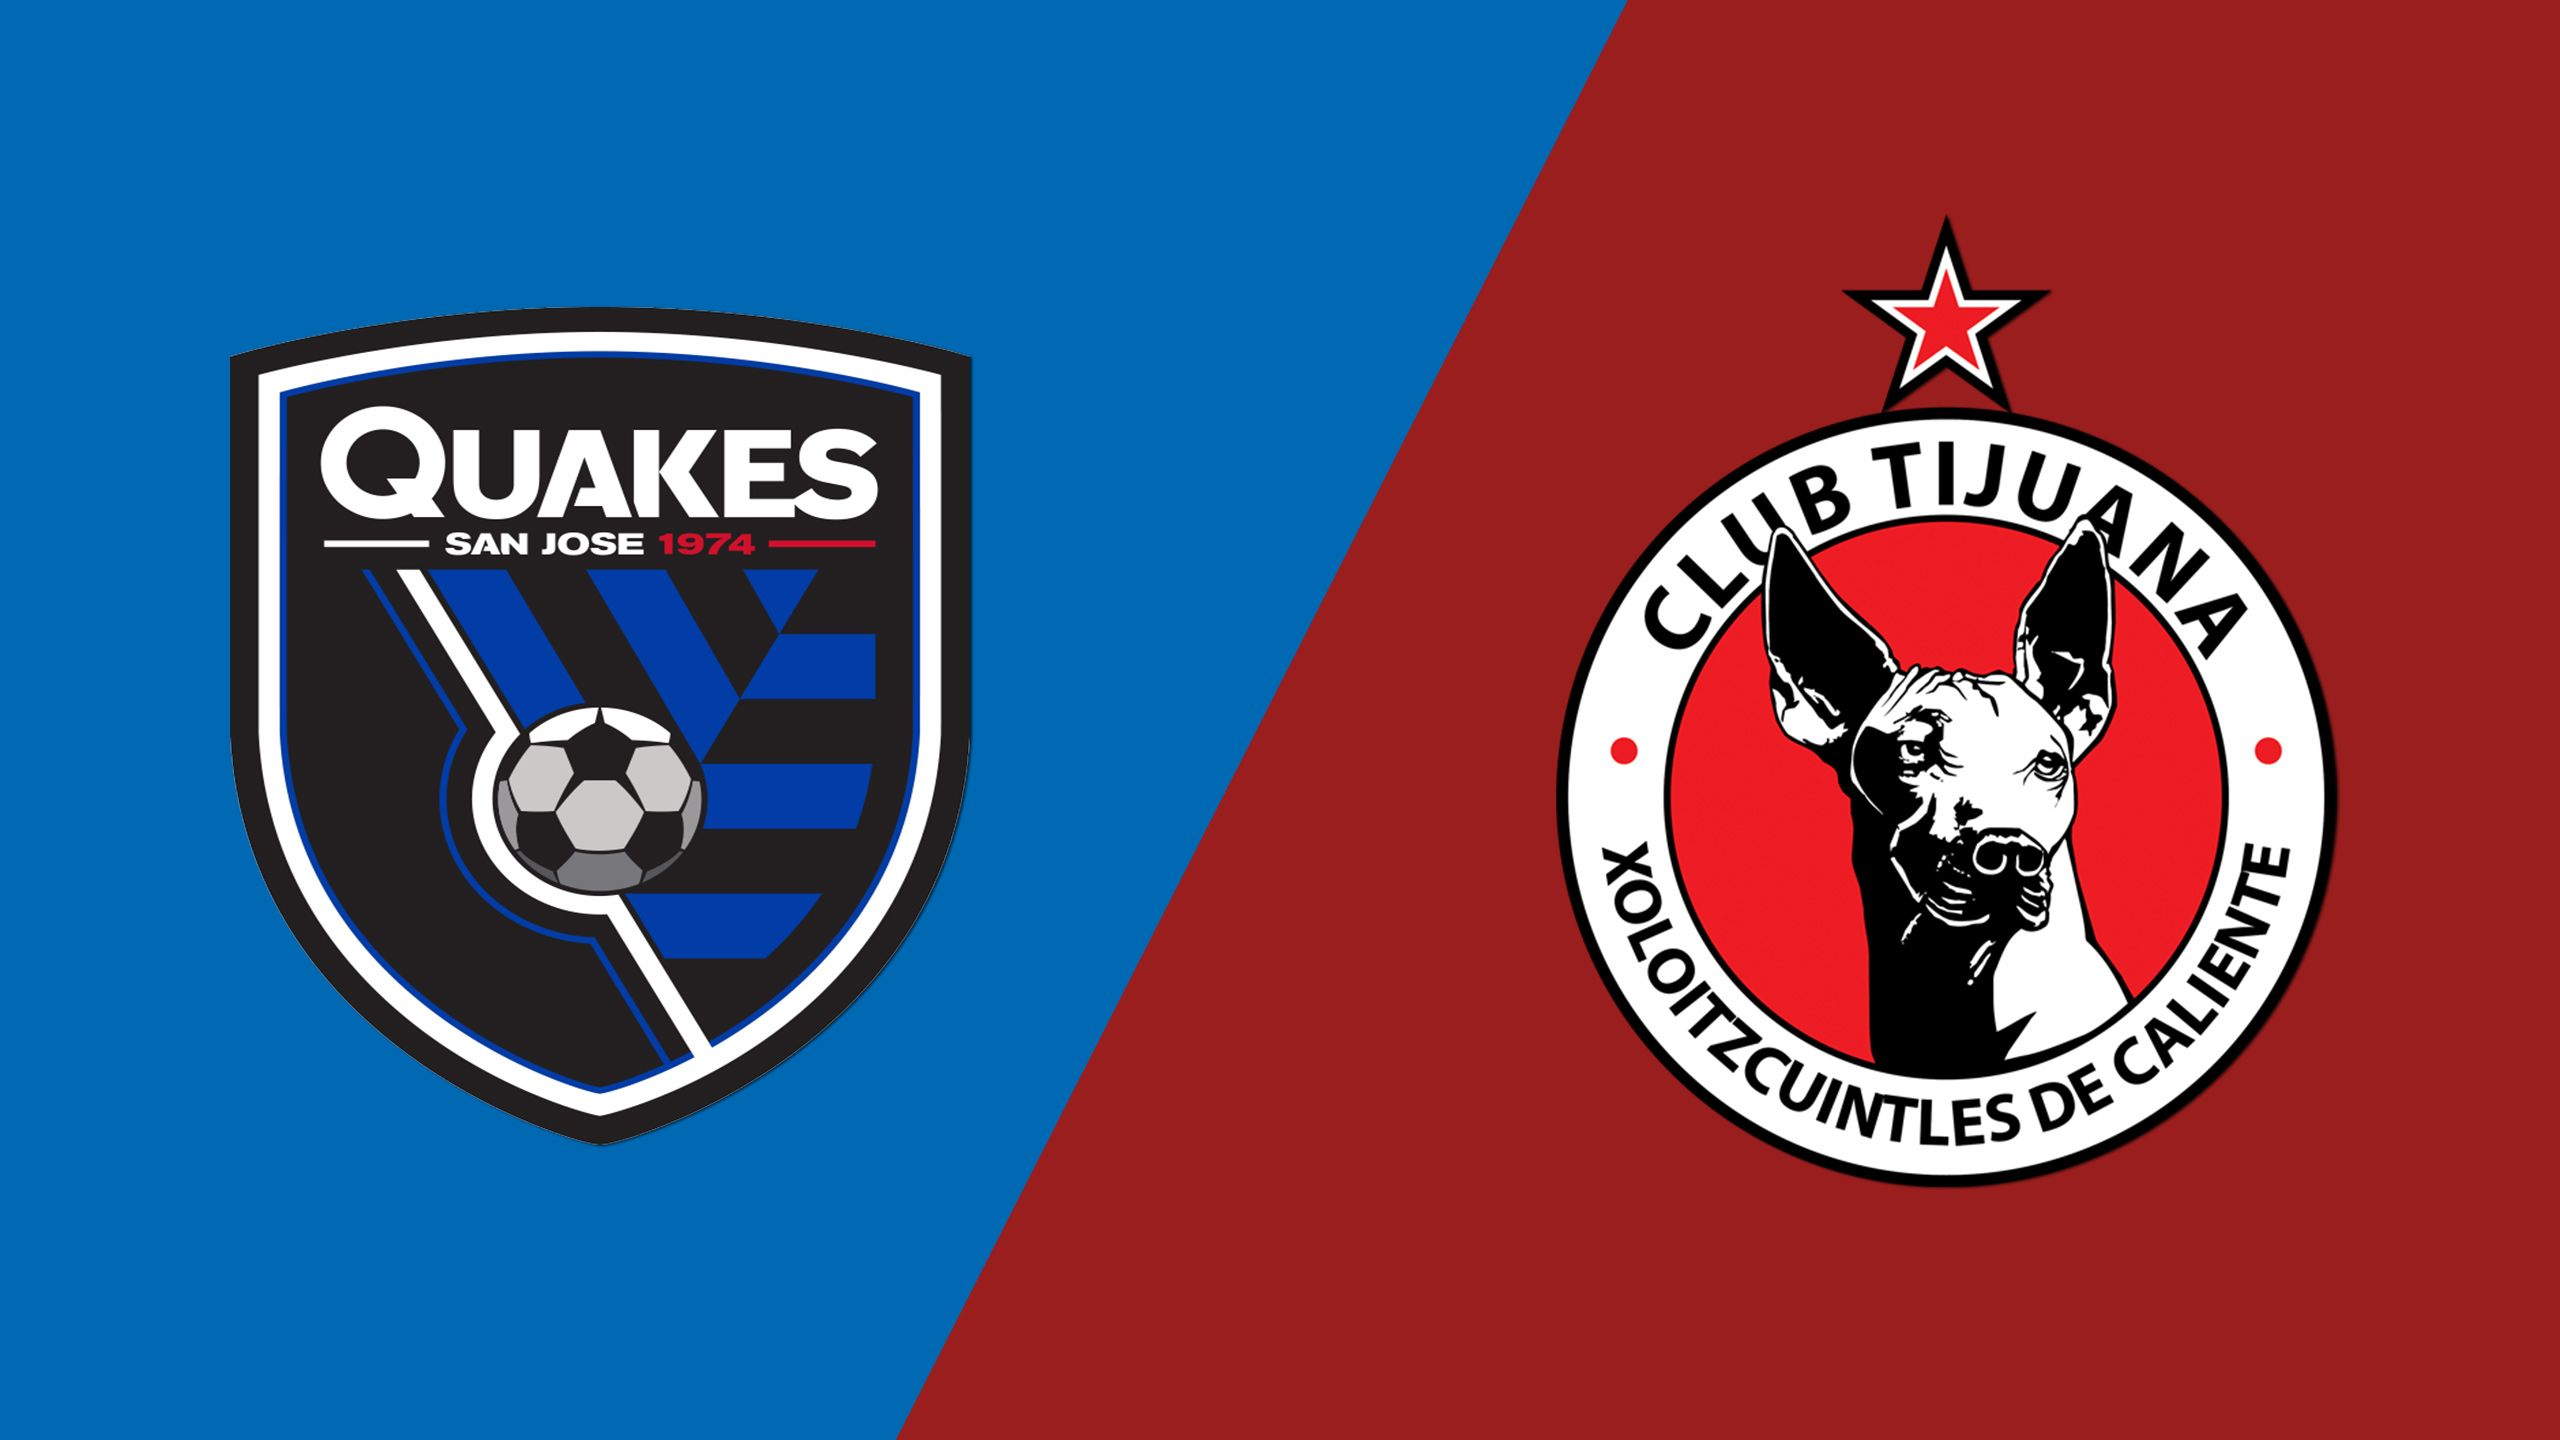 San Jose Earthquakes Under-14 vs. Xolos de Tijuana Under-14 (Manchester City Cup)